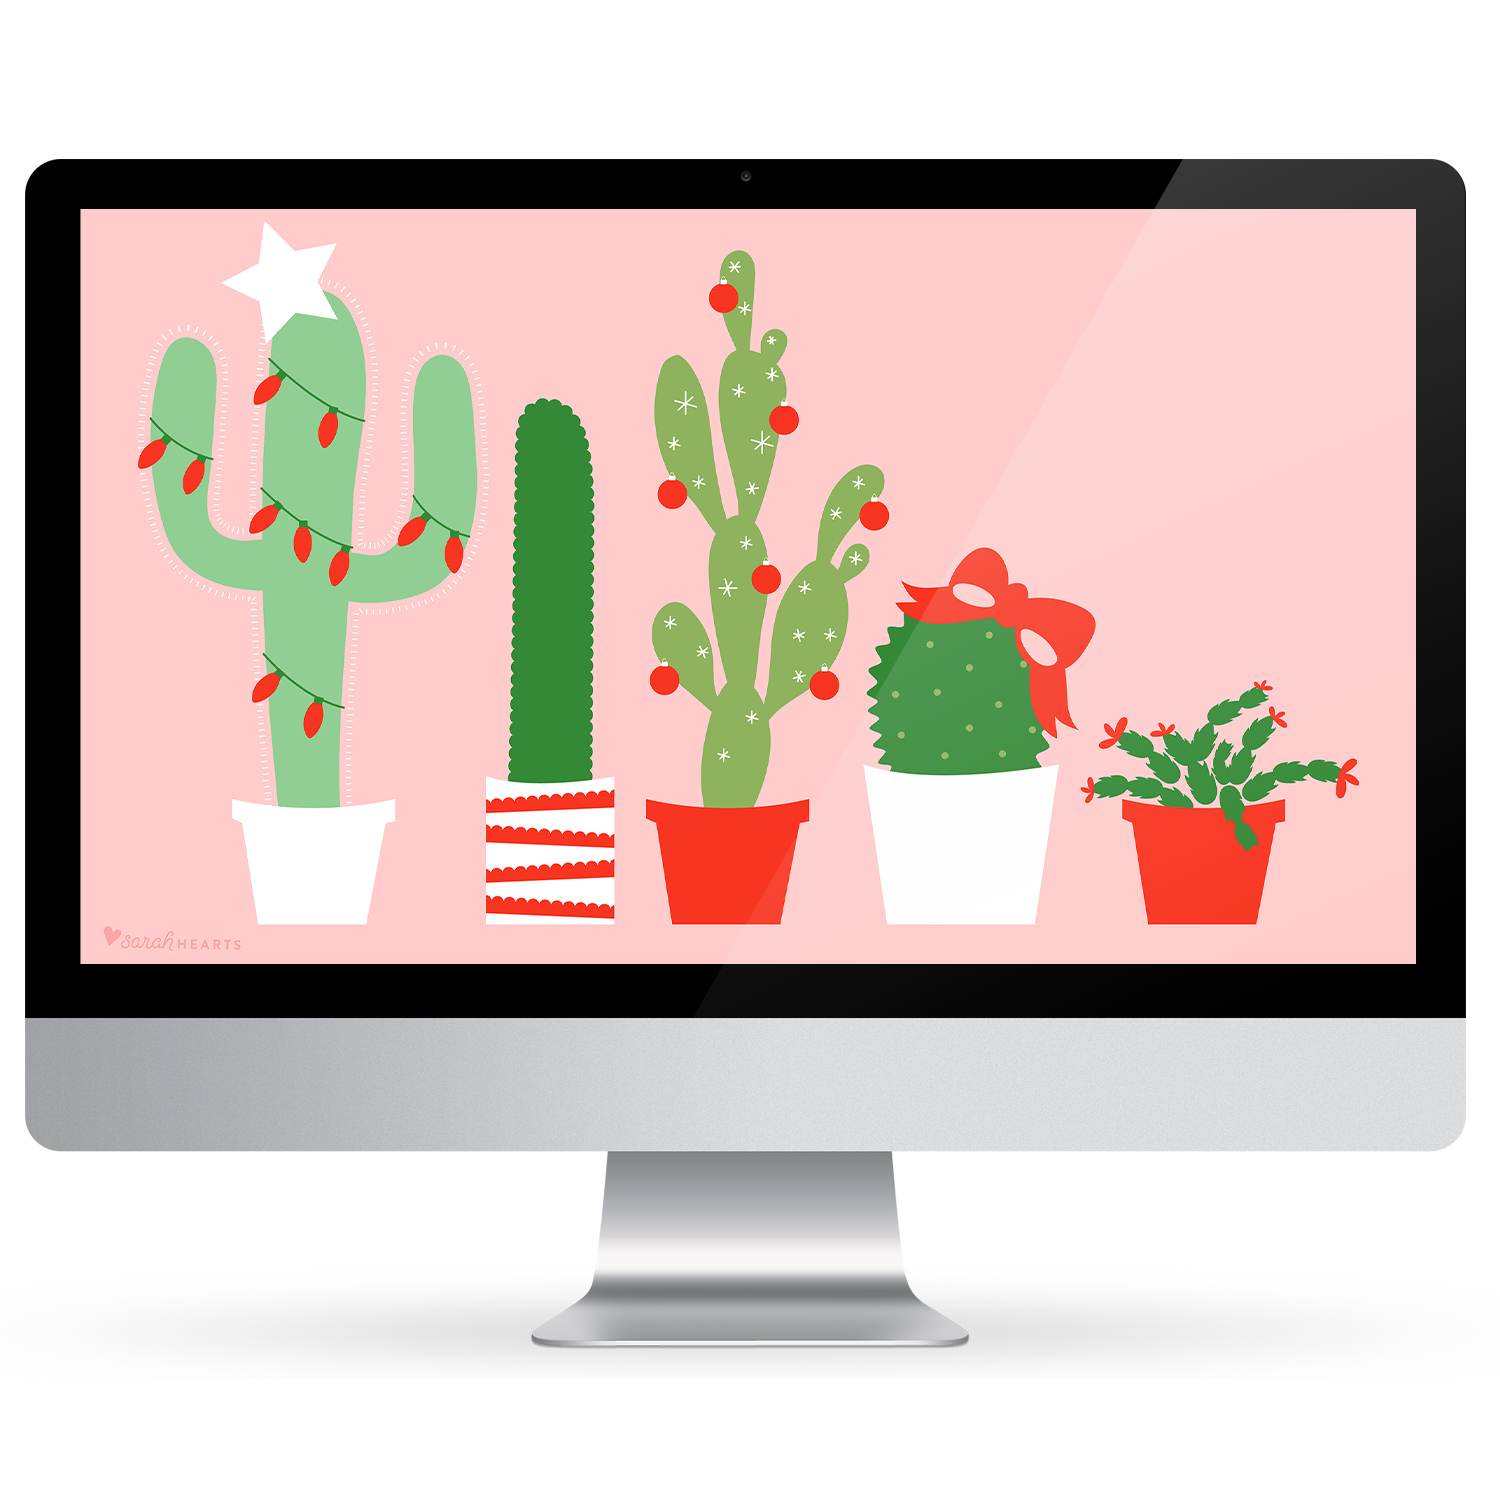 December Calendar Art : December christmas cactus calendar wallpaper sarah hearts